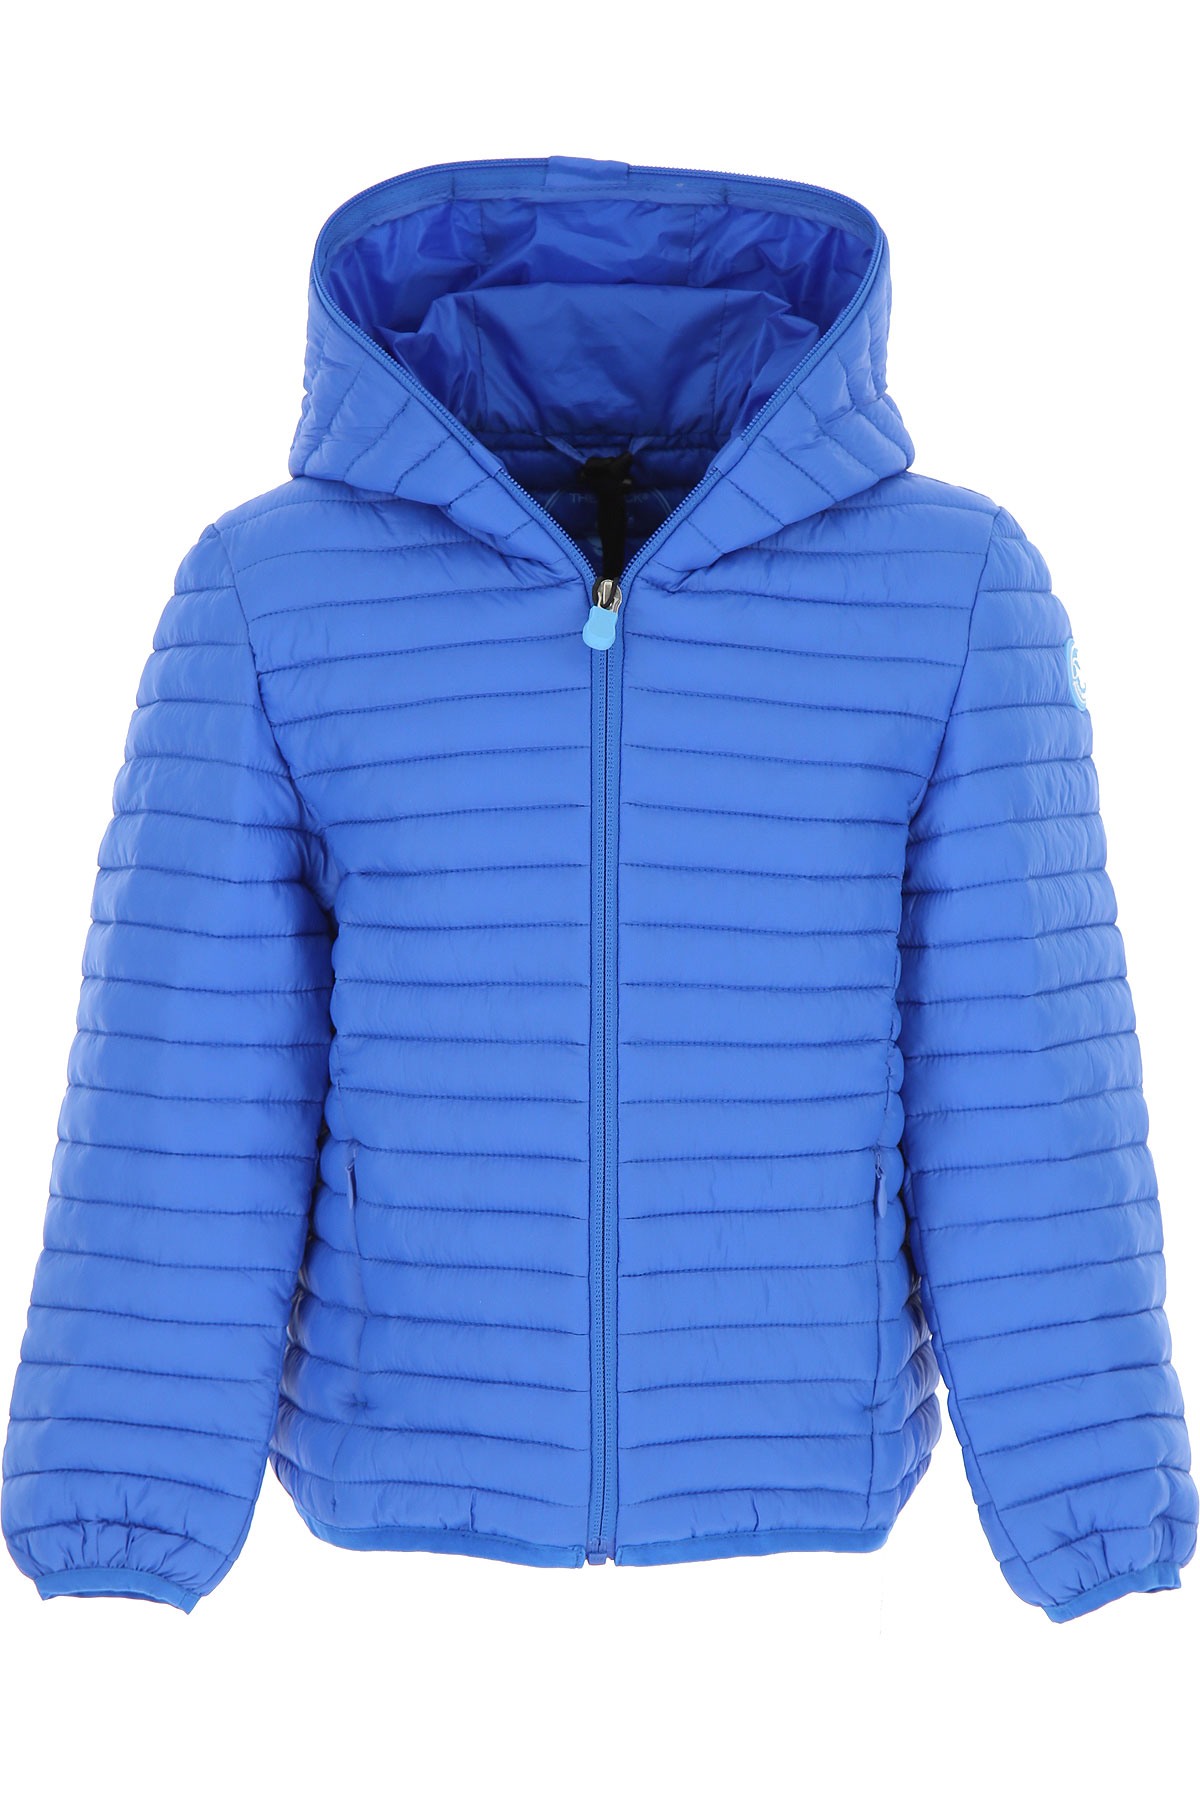 Save the Duck Boys Down Jacket for Kids, Puffer Ski Jacket, Blue Sky, Recycled Polyester, 2017, 10Y 14Y 16Y 4Y 6Y 8Y